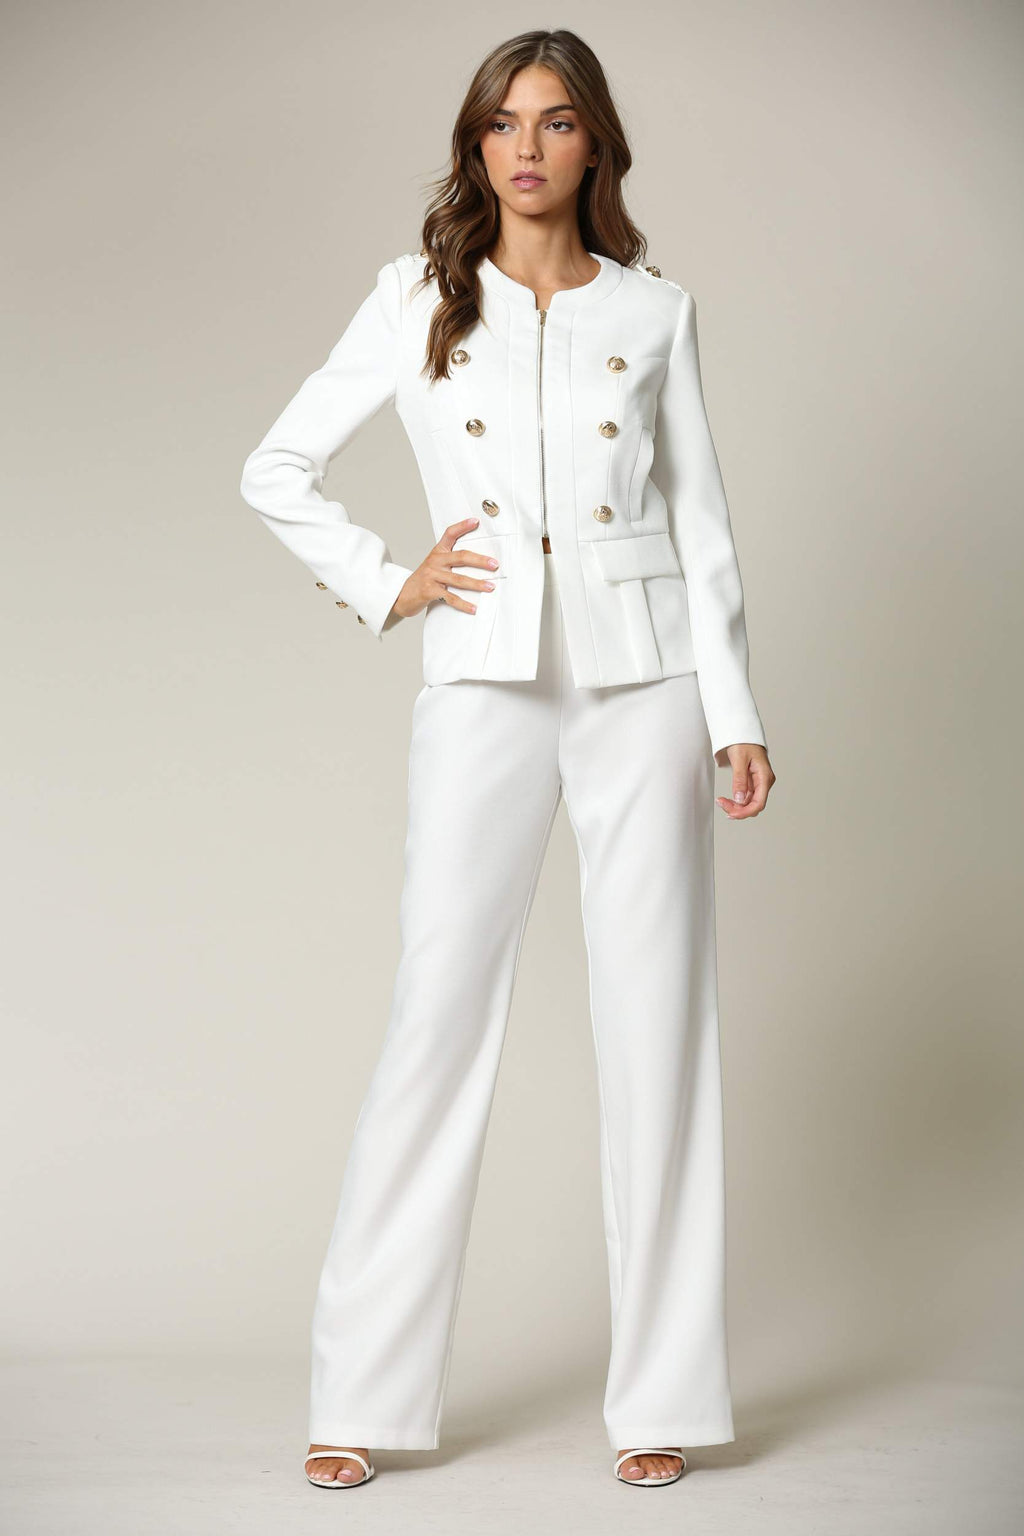 Mix & Match Two Piece Tailored Pant Suit - White